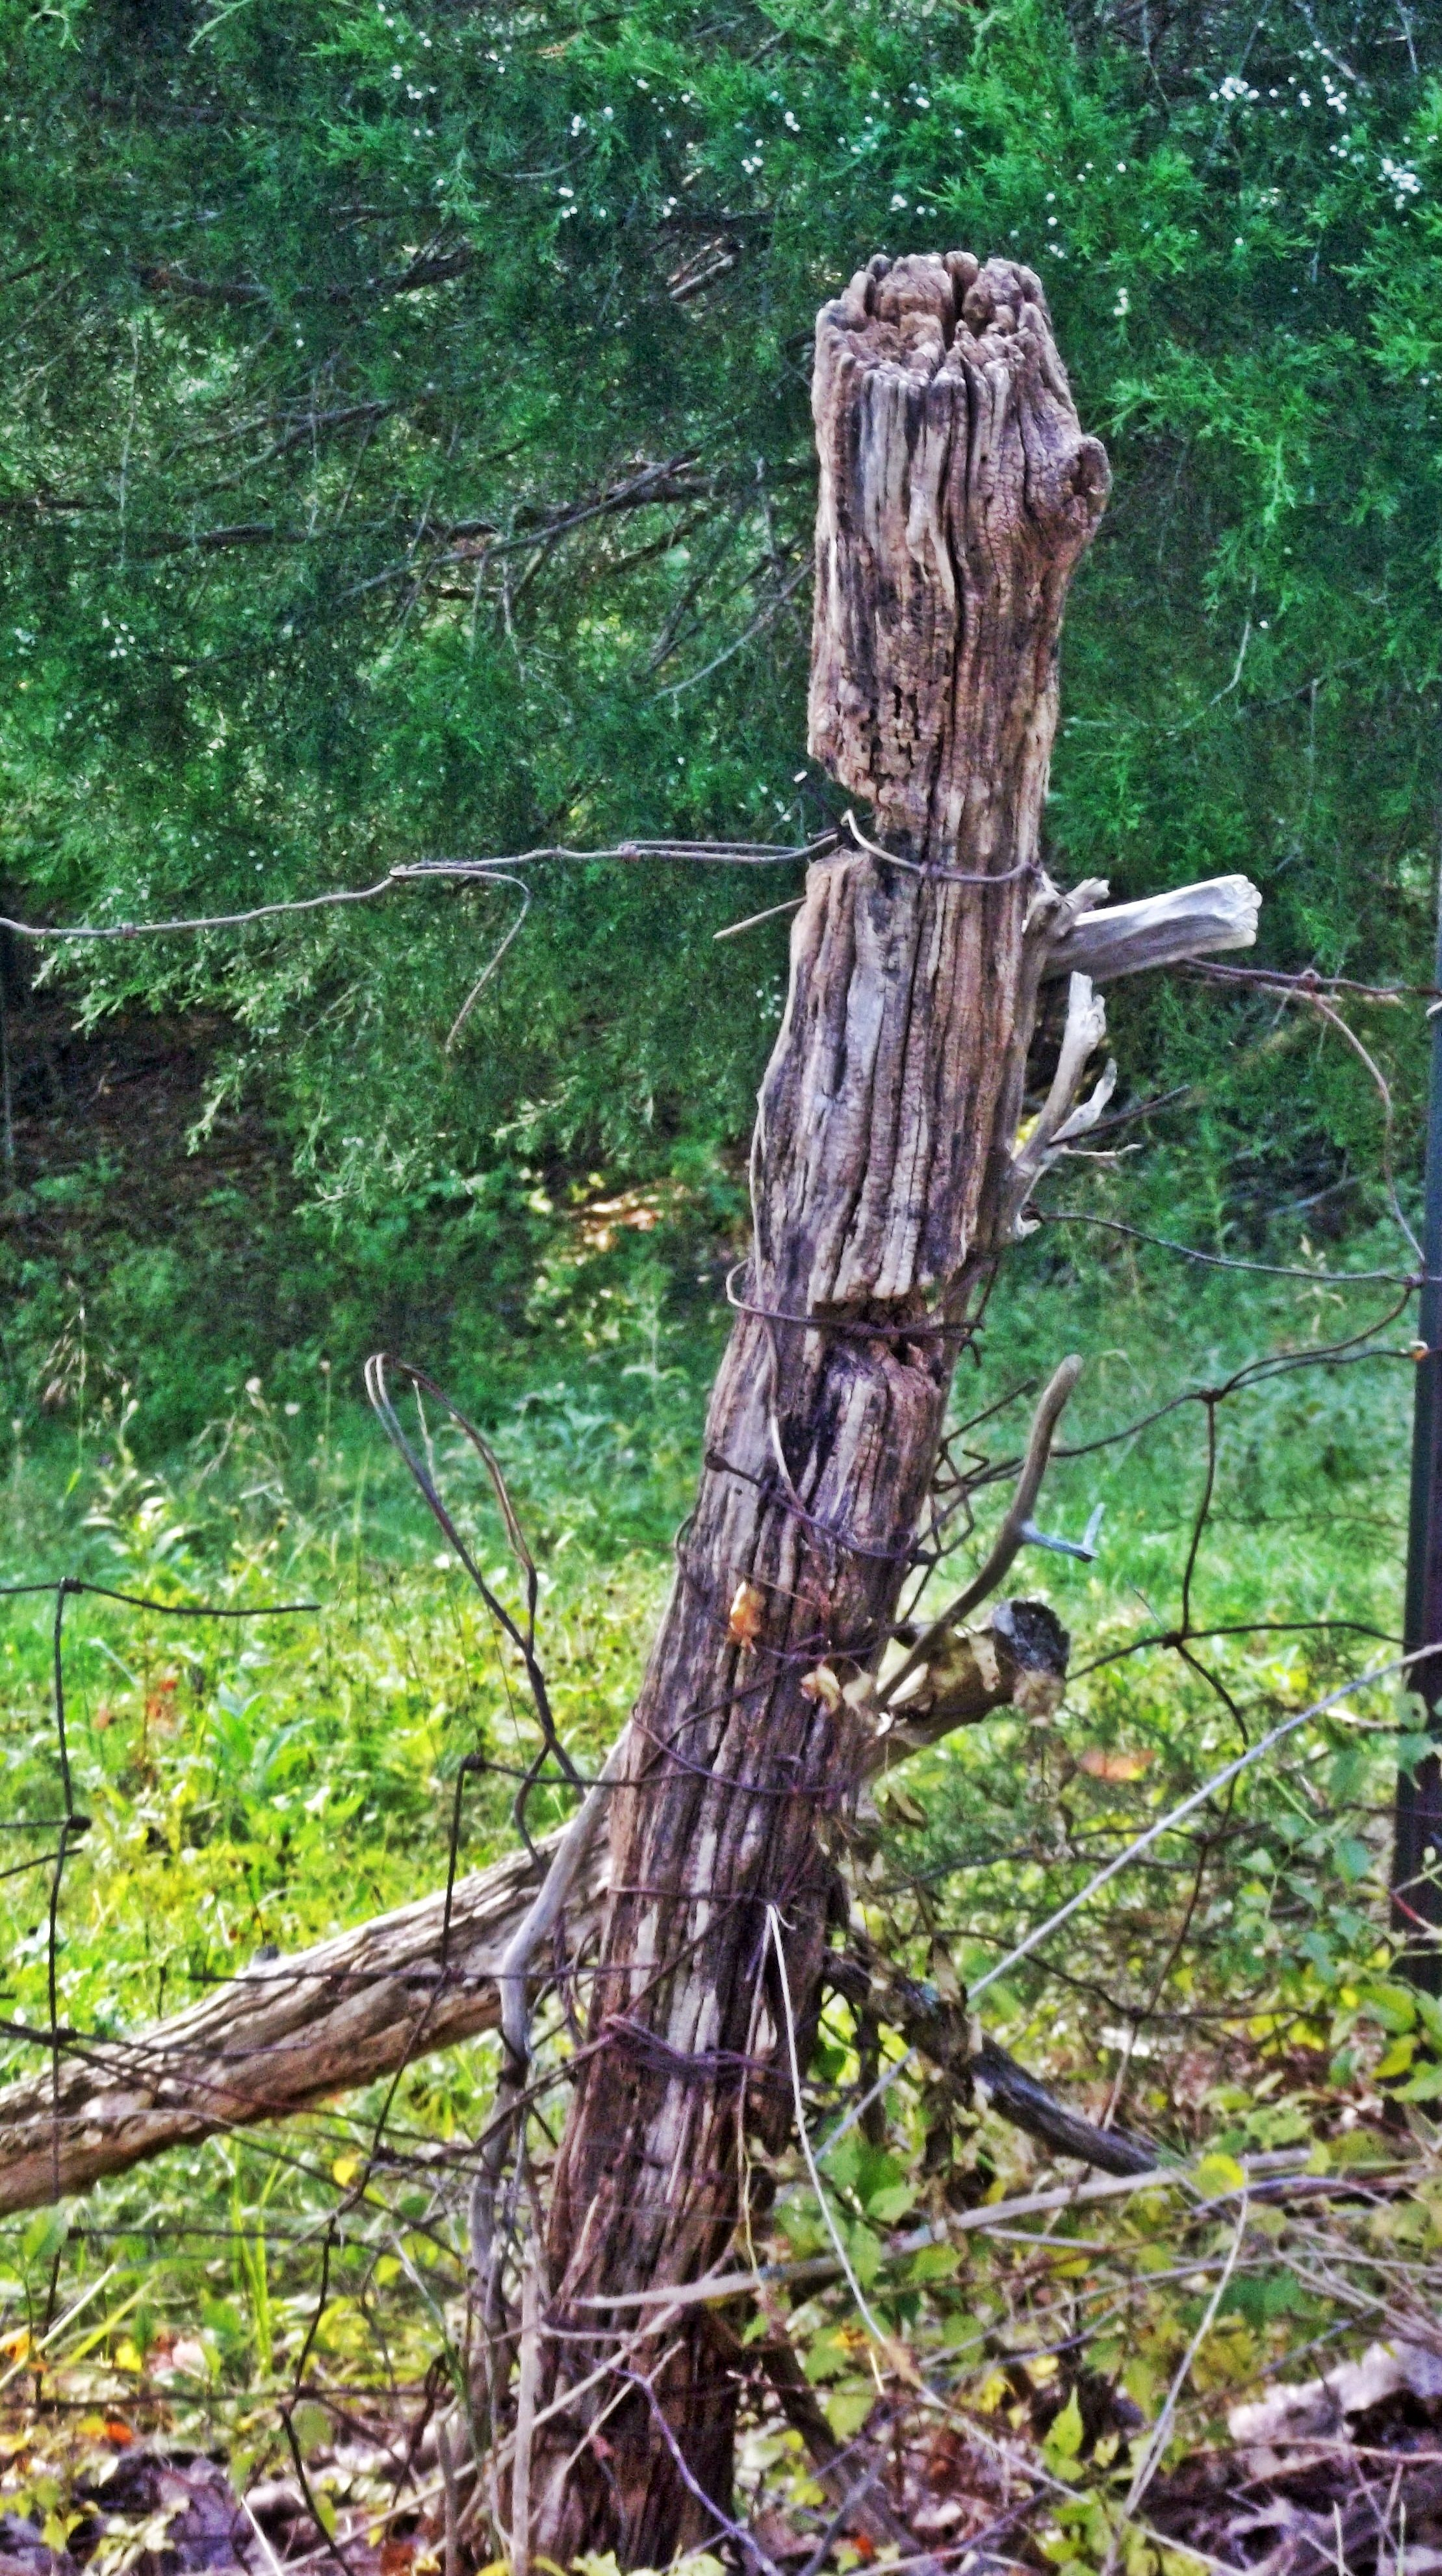 An Old Fence Post Photo By Joy Fussell In 2020 Zaun Natur Wald